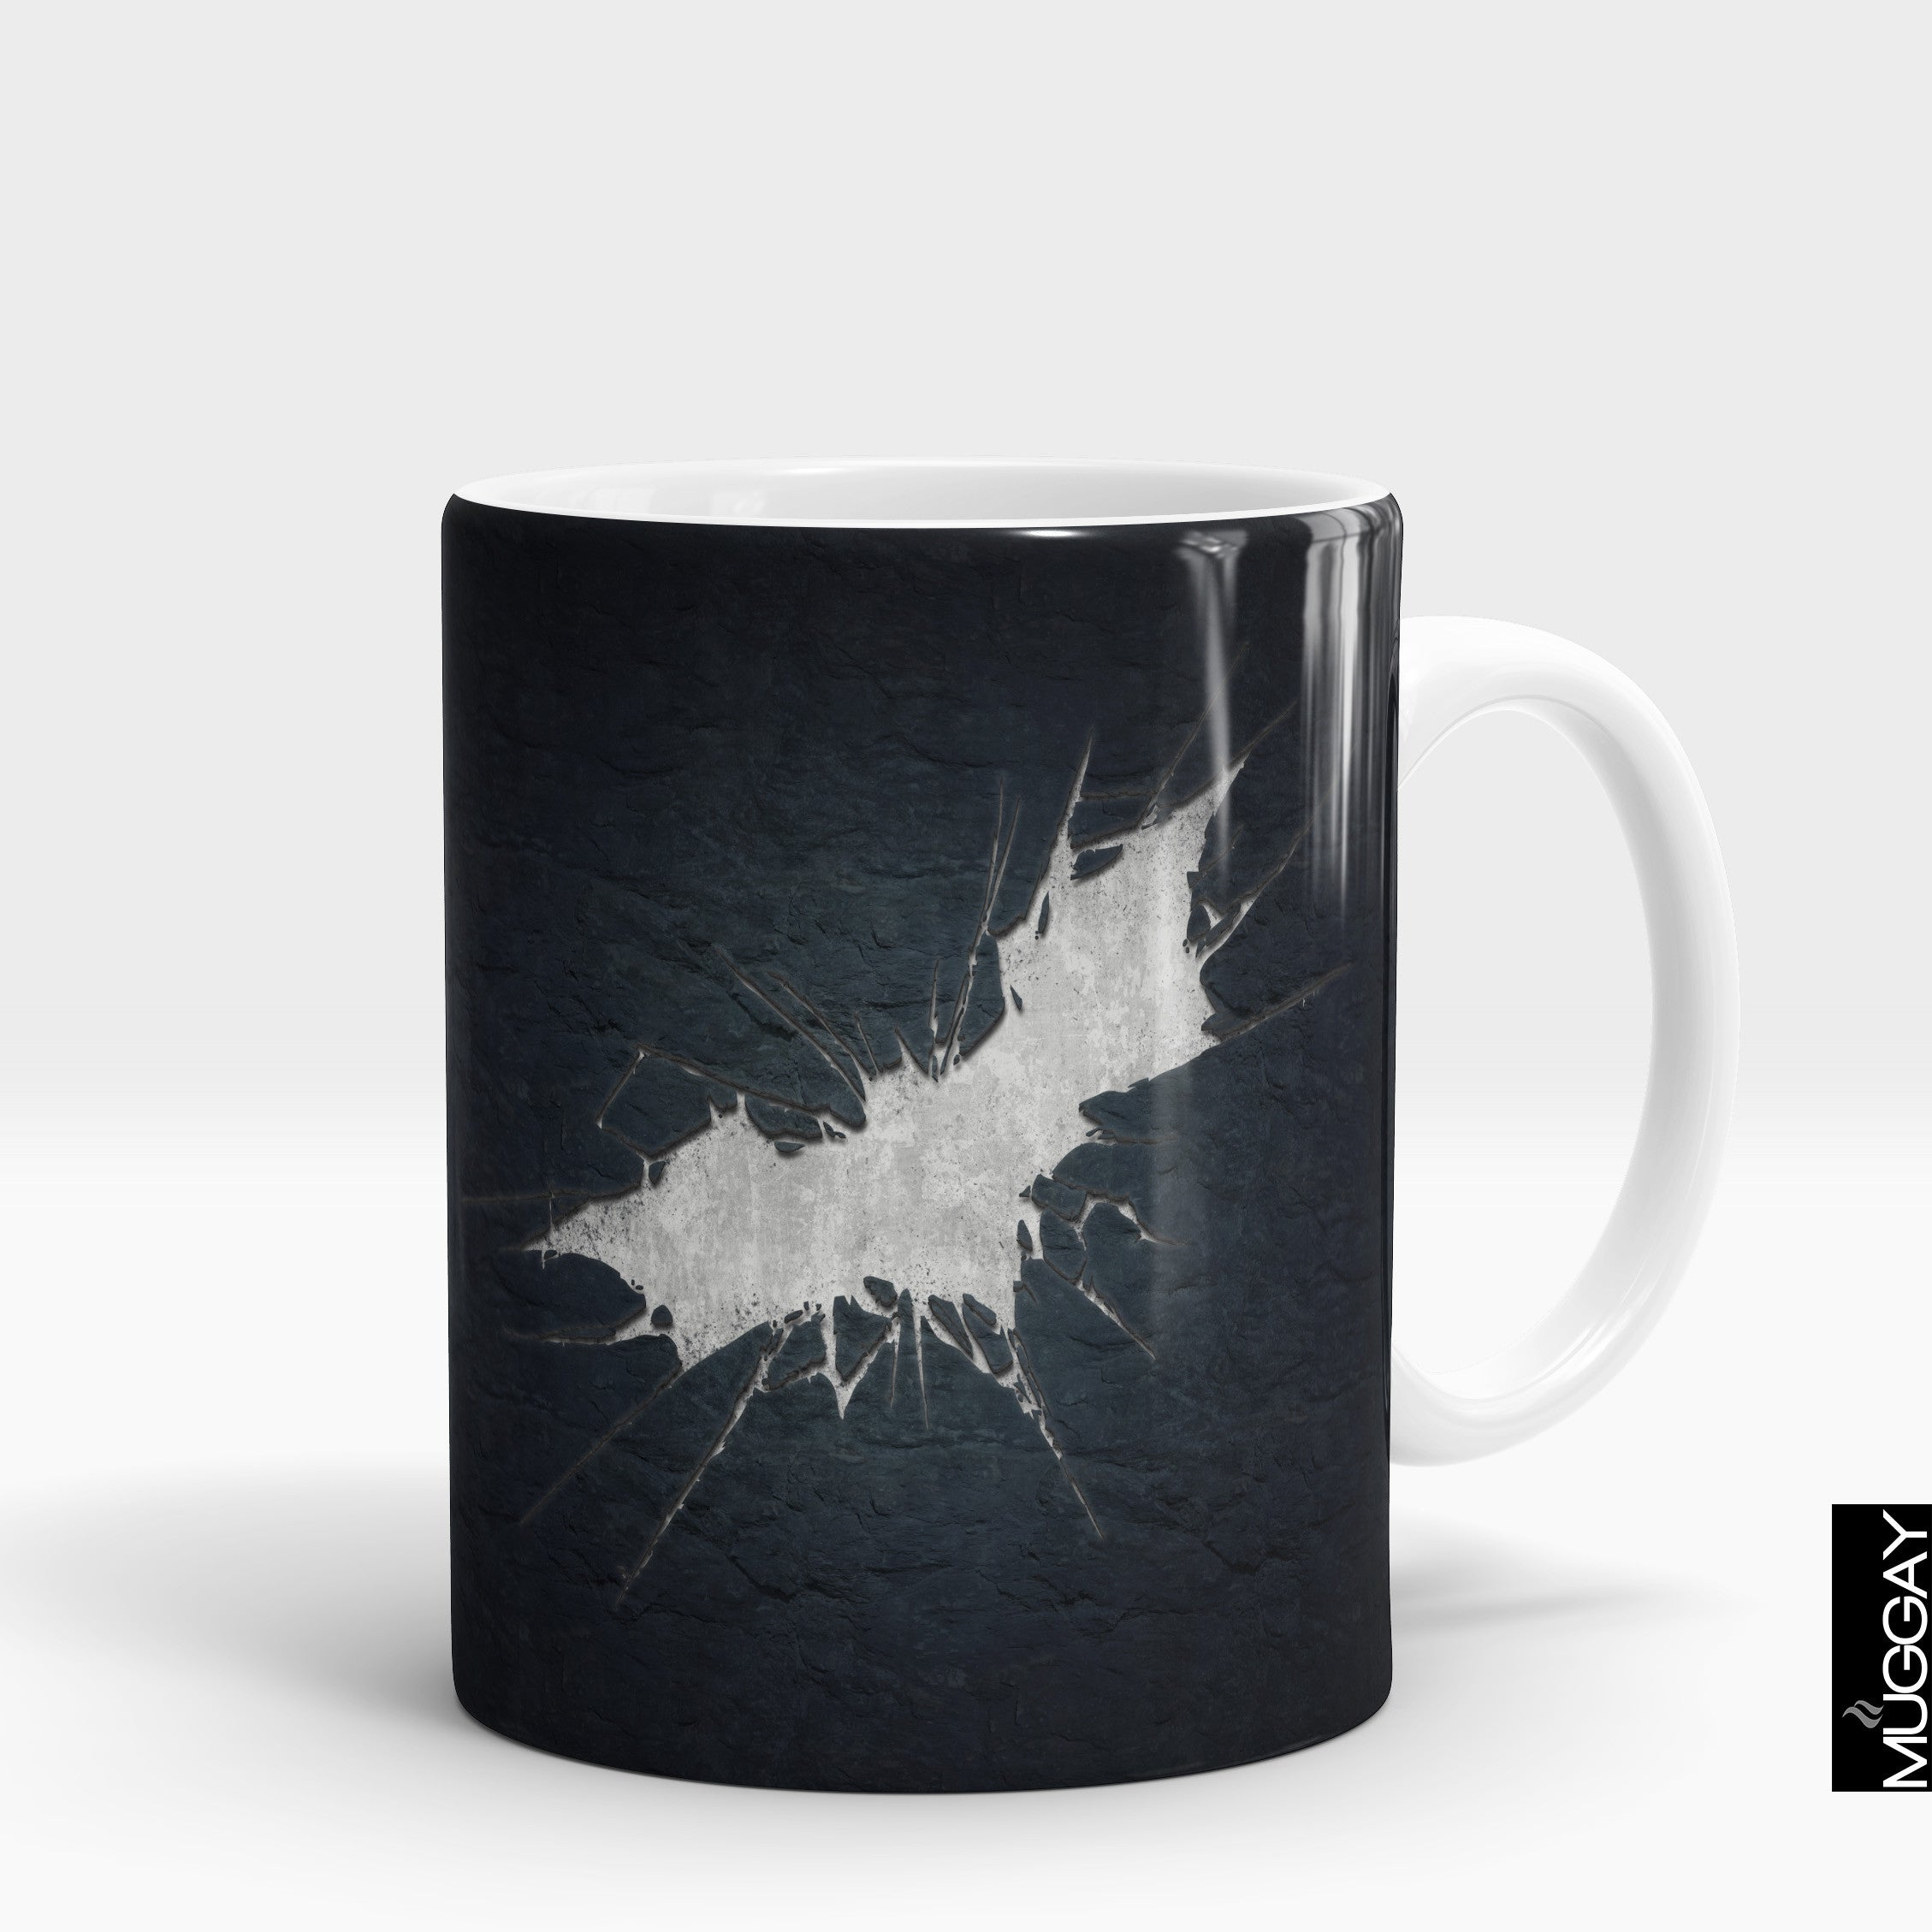 Batman Design Mugs - bm4 - Muggay.com - Mugs - Printing shop - truck Art mugs - Mug printing - Customized printing - Digital printing - Muggay